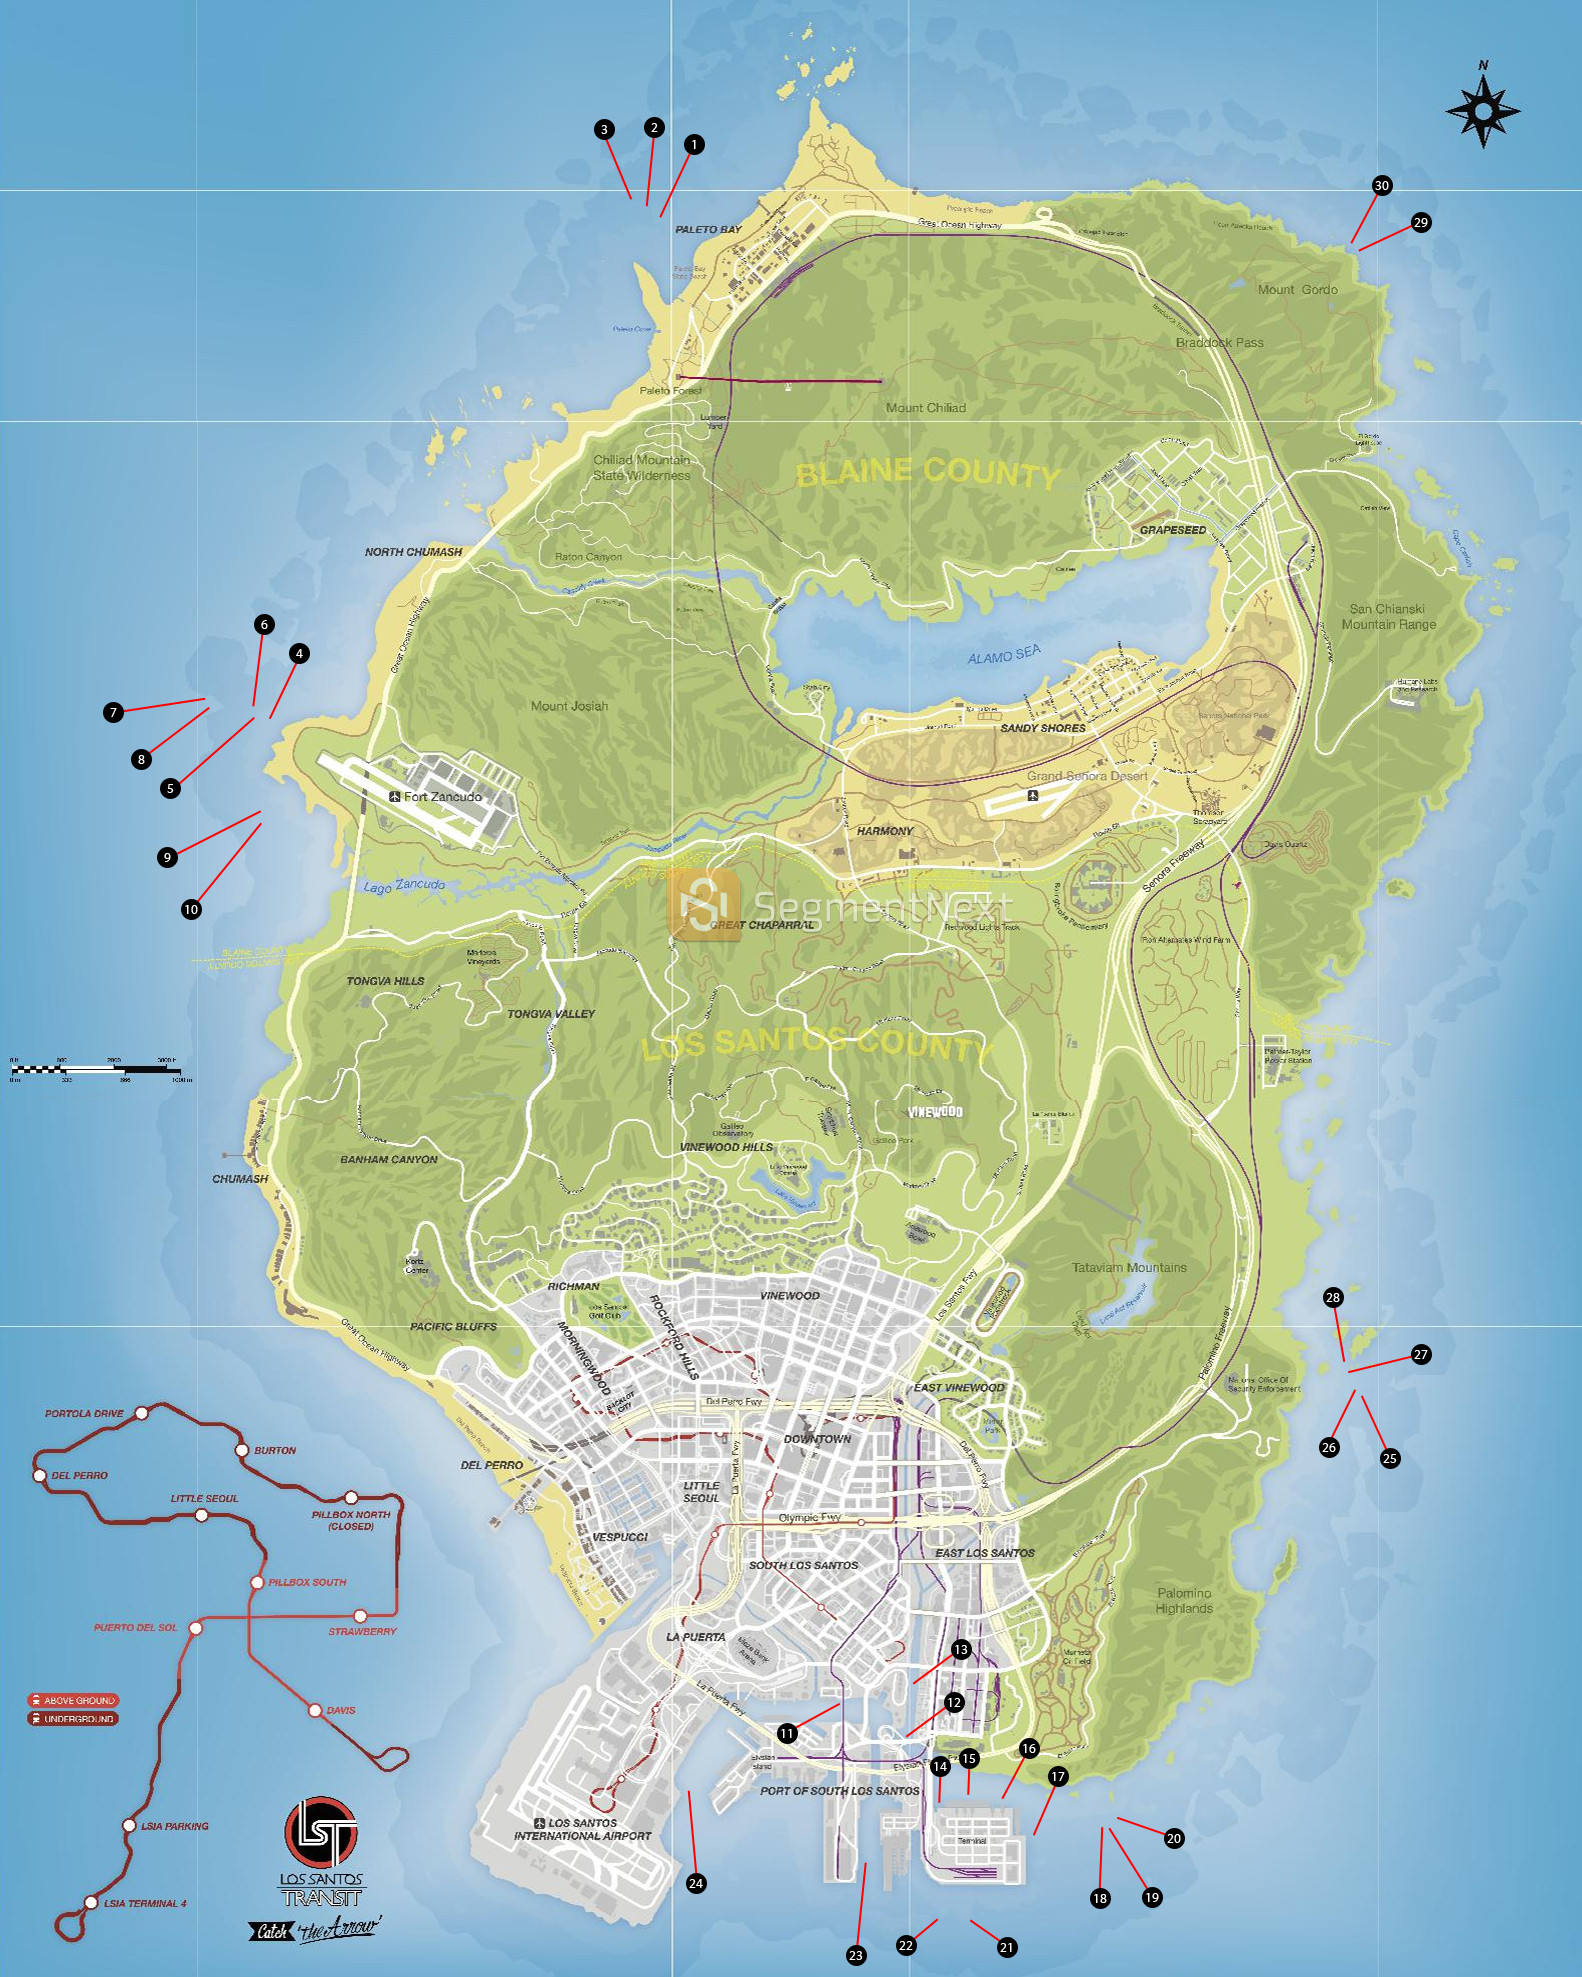 Printable Gta 5 Map Luxury Steam Munity Guide Maps And Collectibles Locations